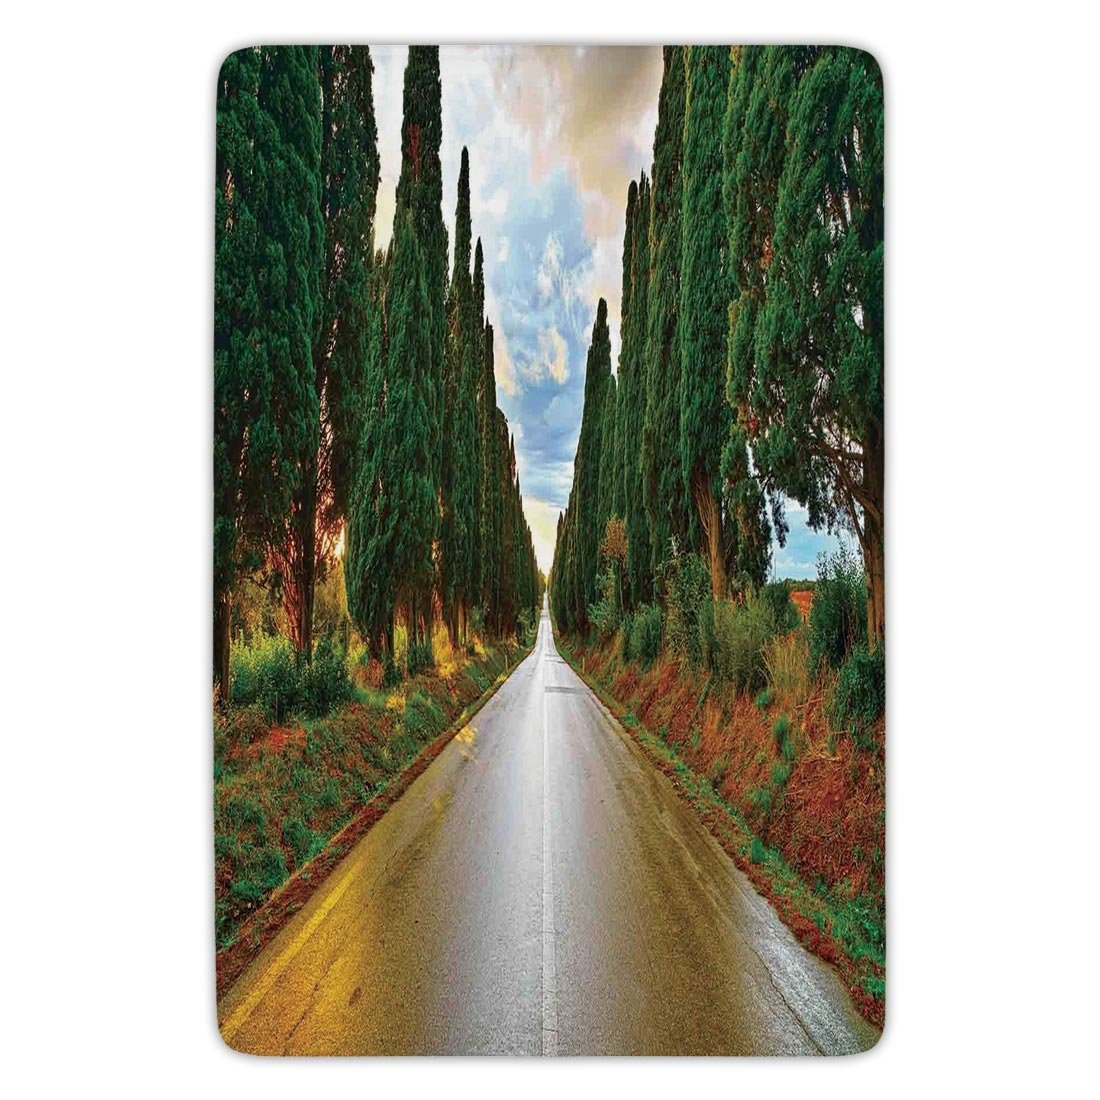 Bathroom Bath Rug Kitchen Floor Mat Carpet,Tuscan Decor,Large Boulevard with Trees in Old European Village Country Life Destination Artistic Photo,Multi,Flannel Microfiber Non-slip Soft Absorbent